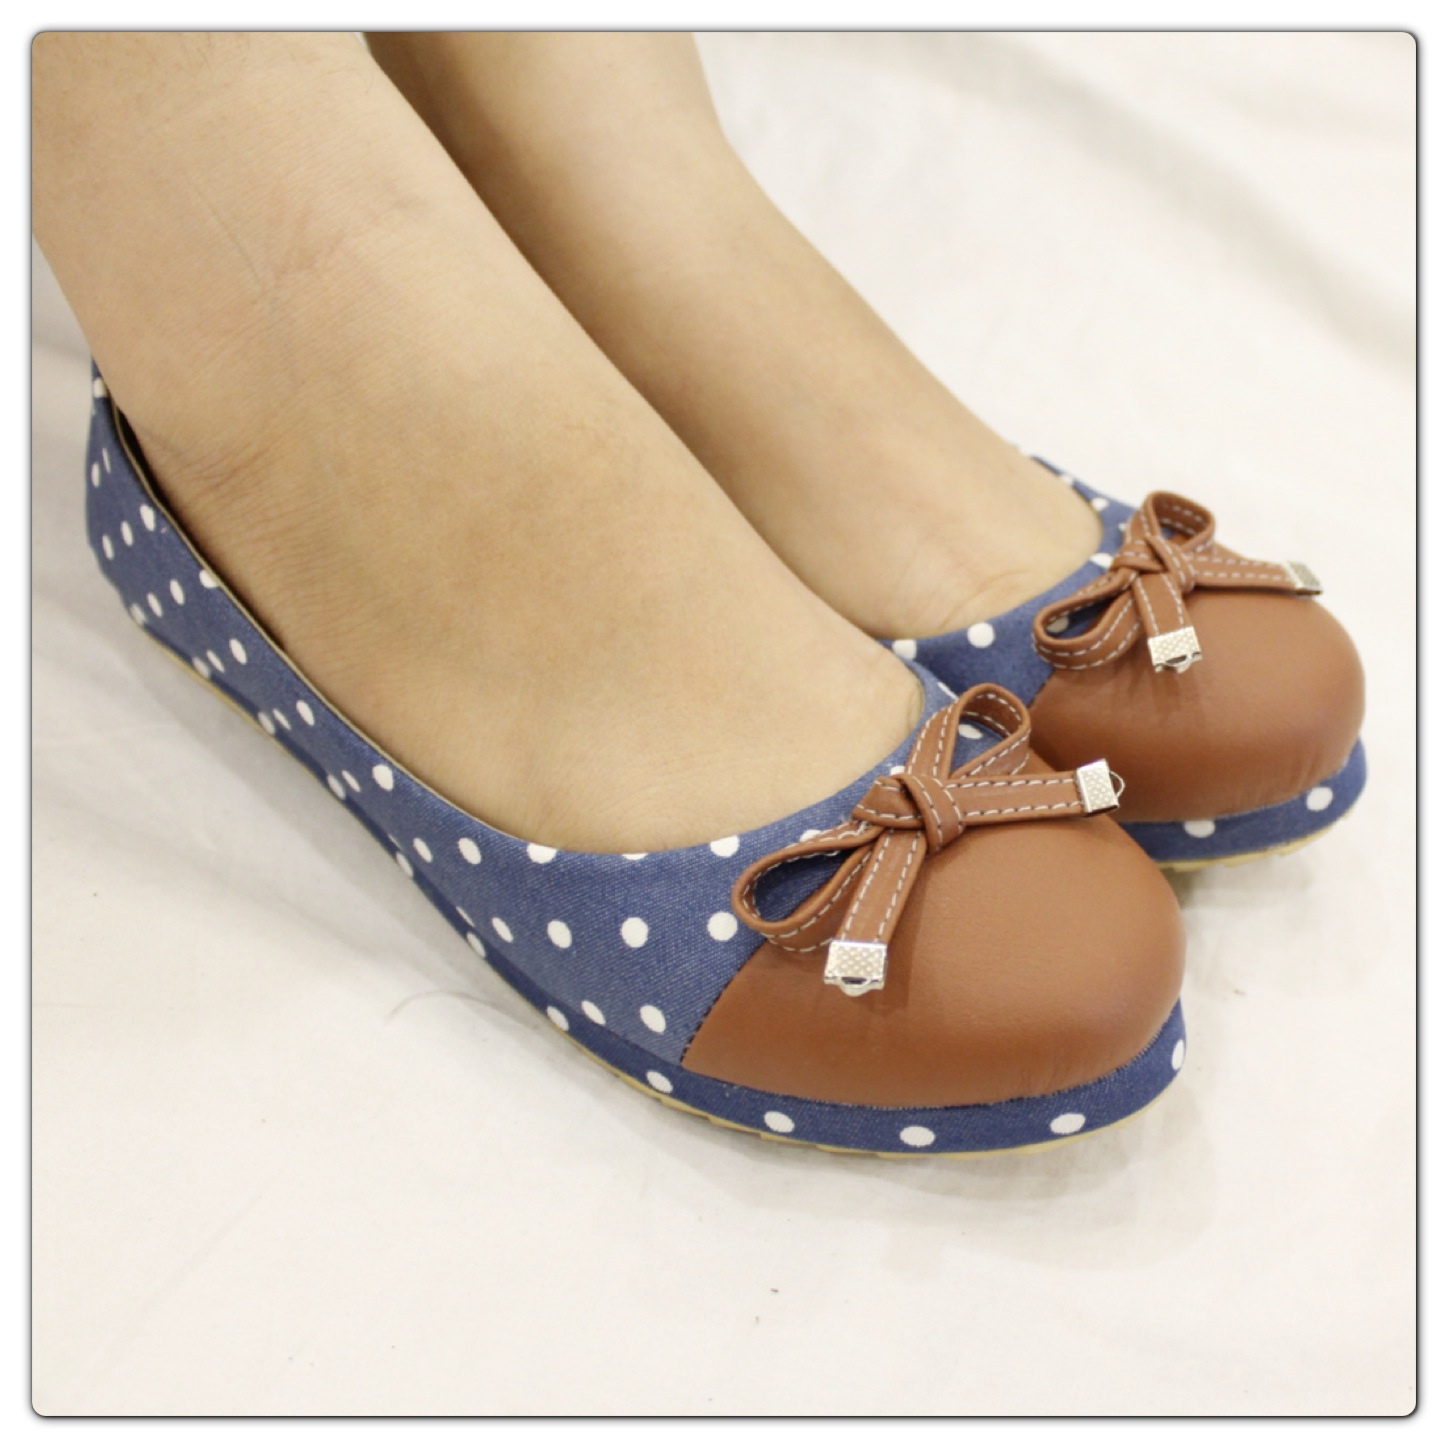 Whitepurple Katalog Sepatu Add Pin 29ef228f Text To Flat Polkadot Bonafeet 90rb